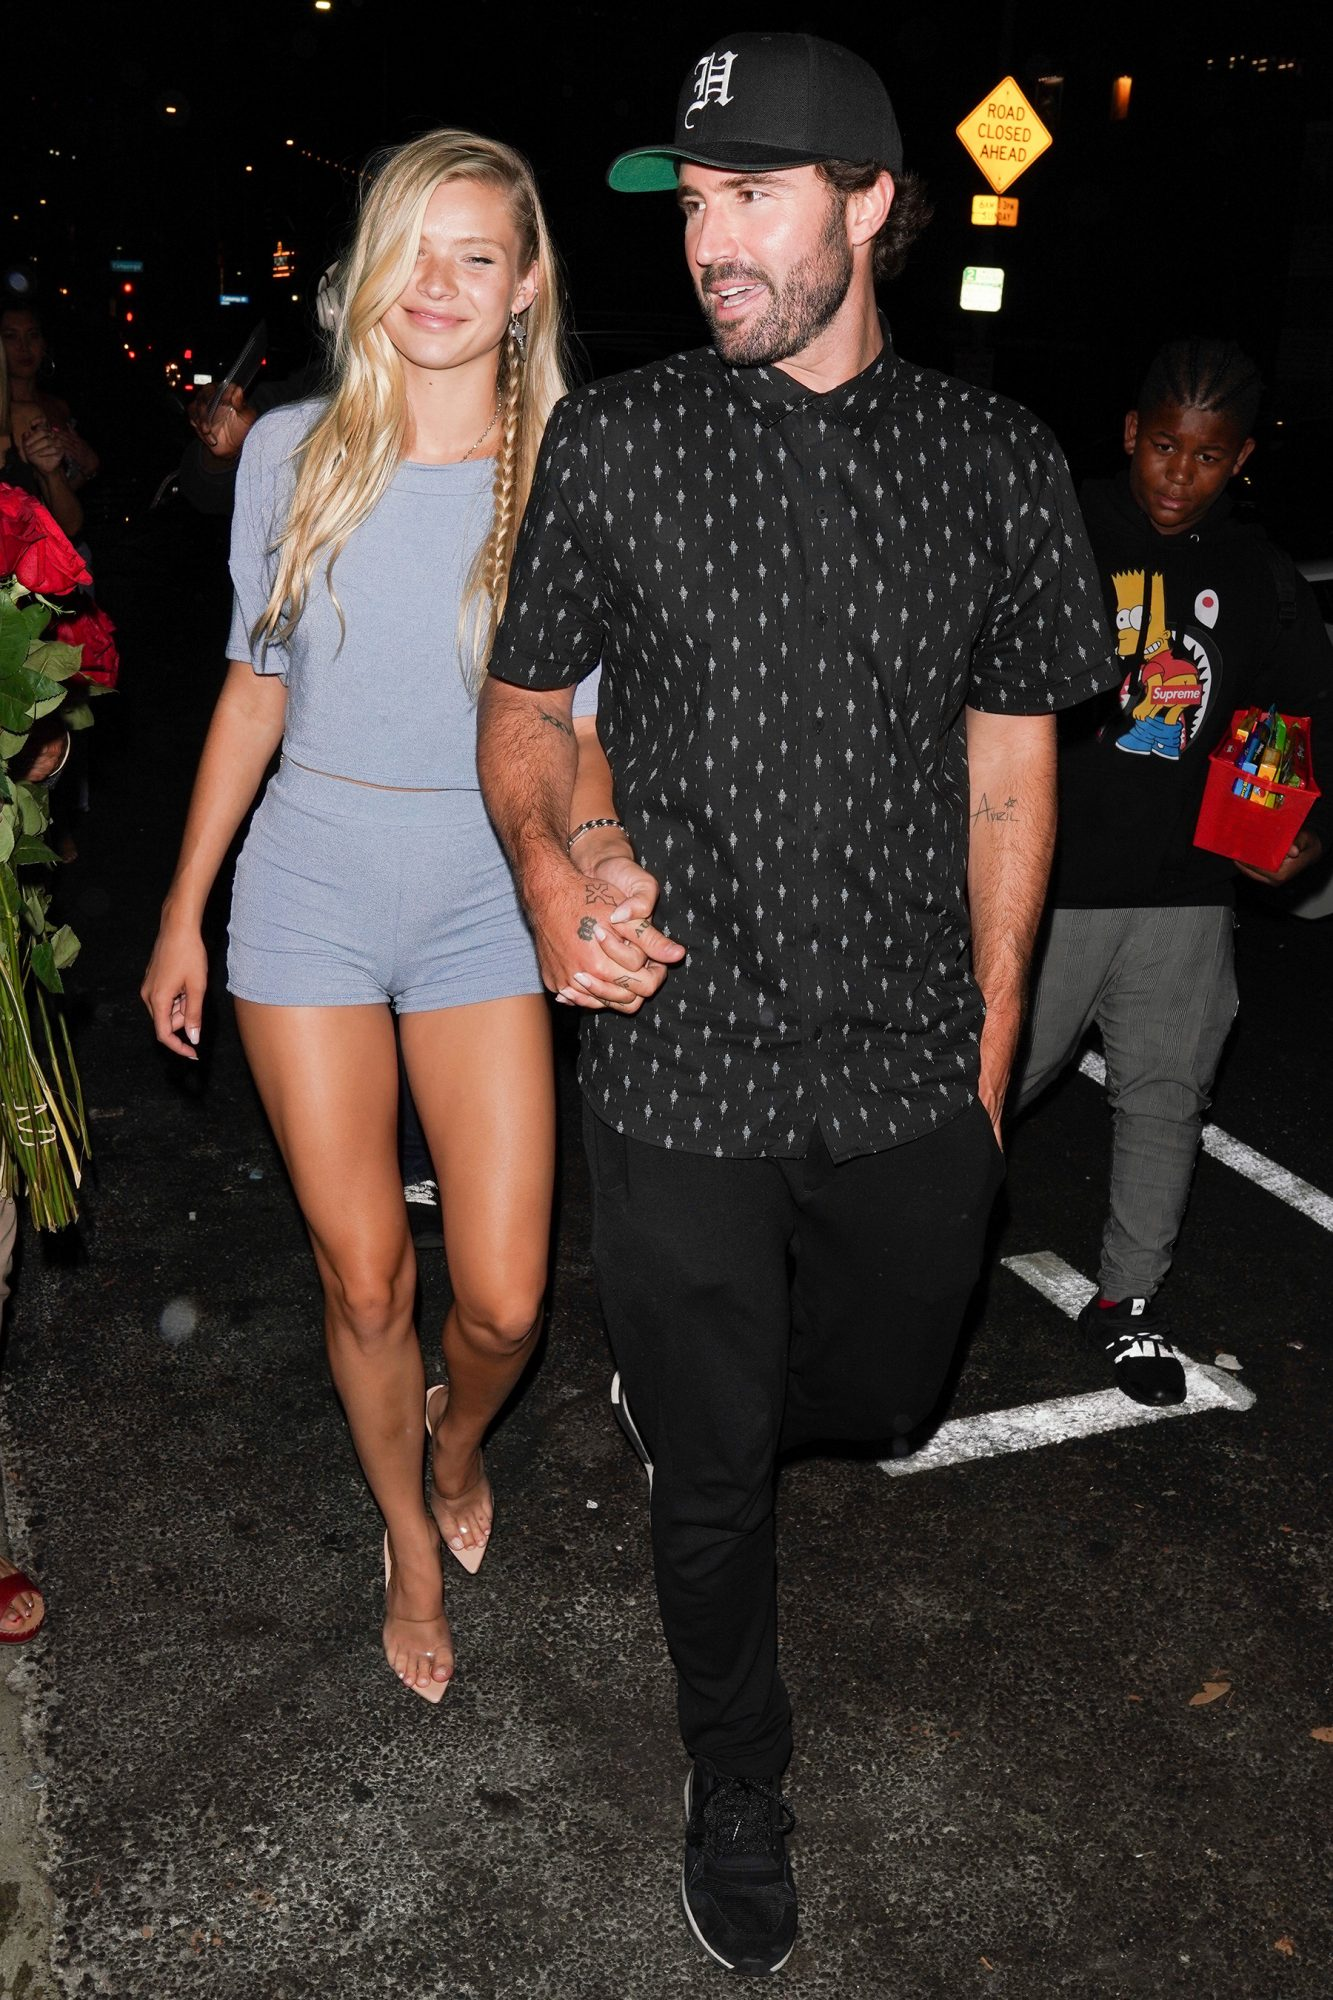 Brody Jenner and Josie canseco leave Tao for his birthday dinner